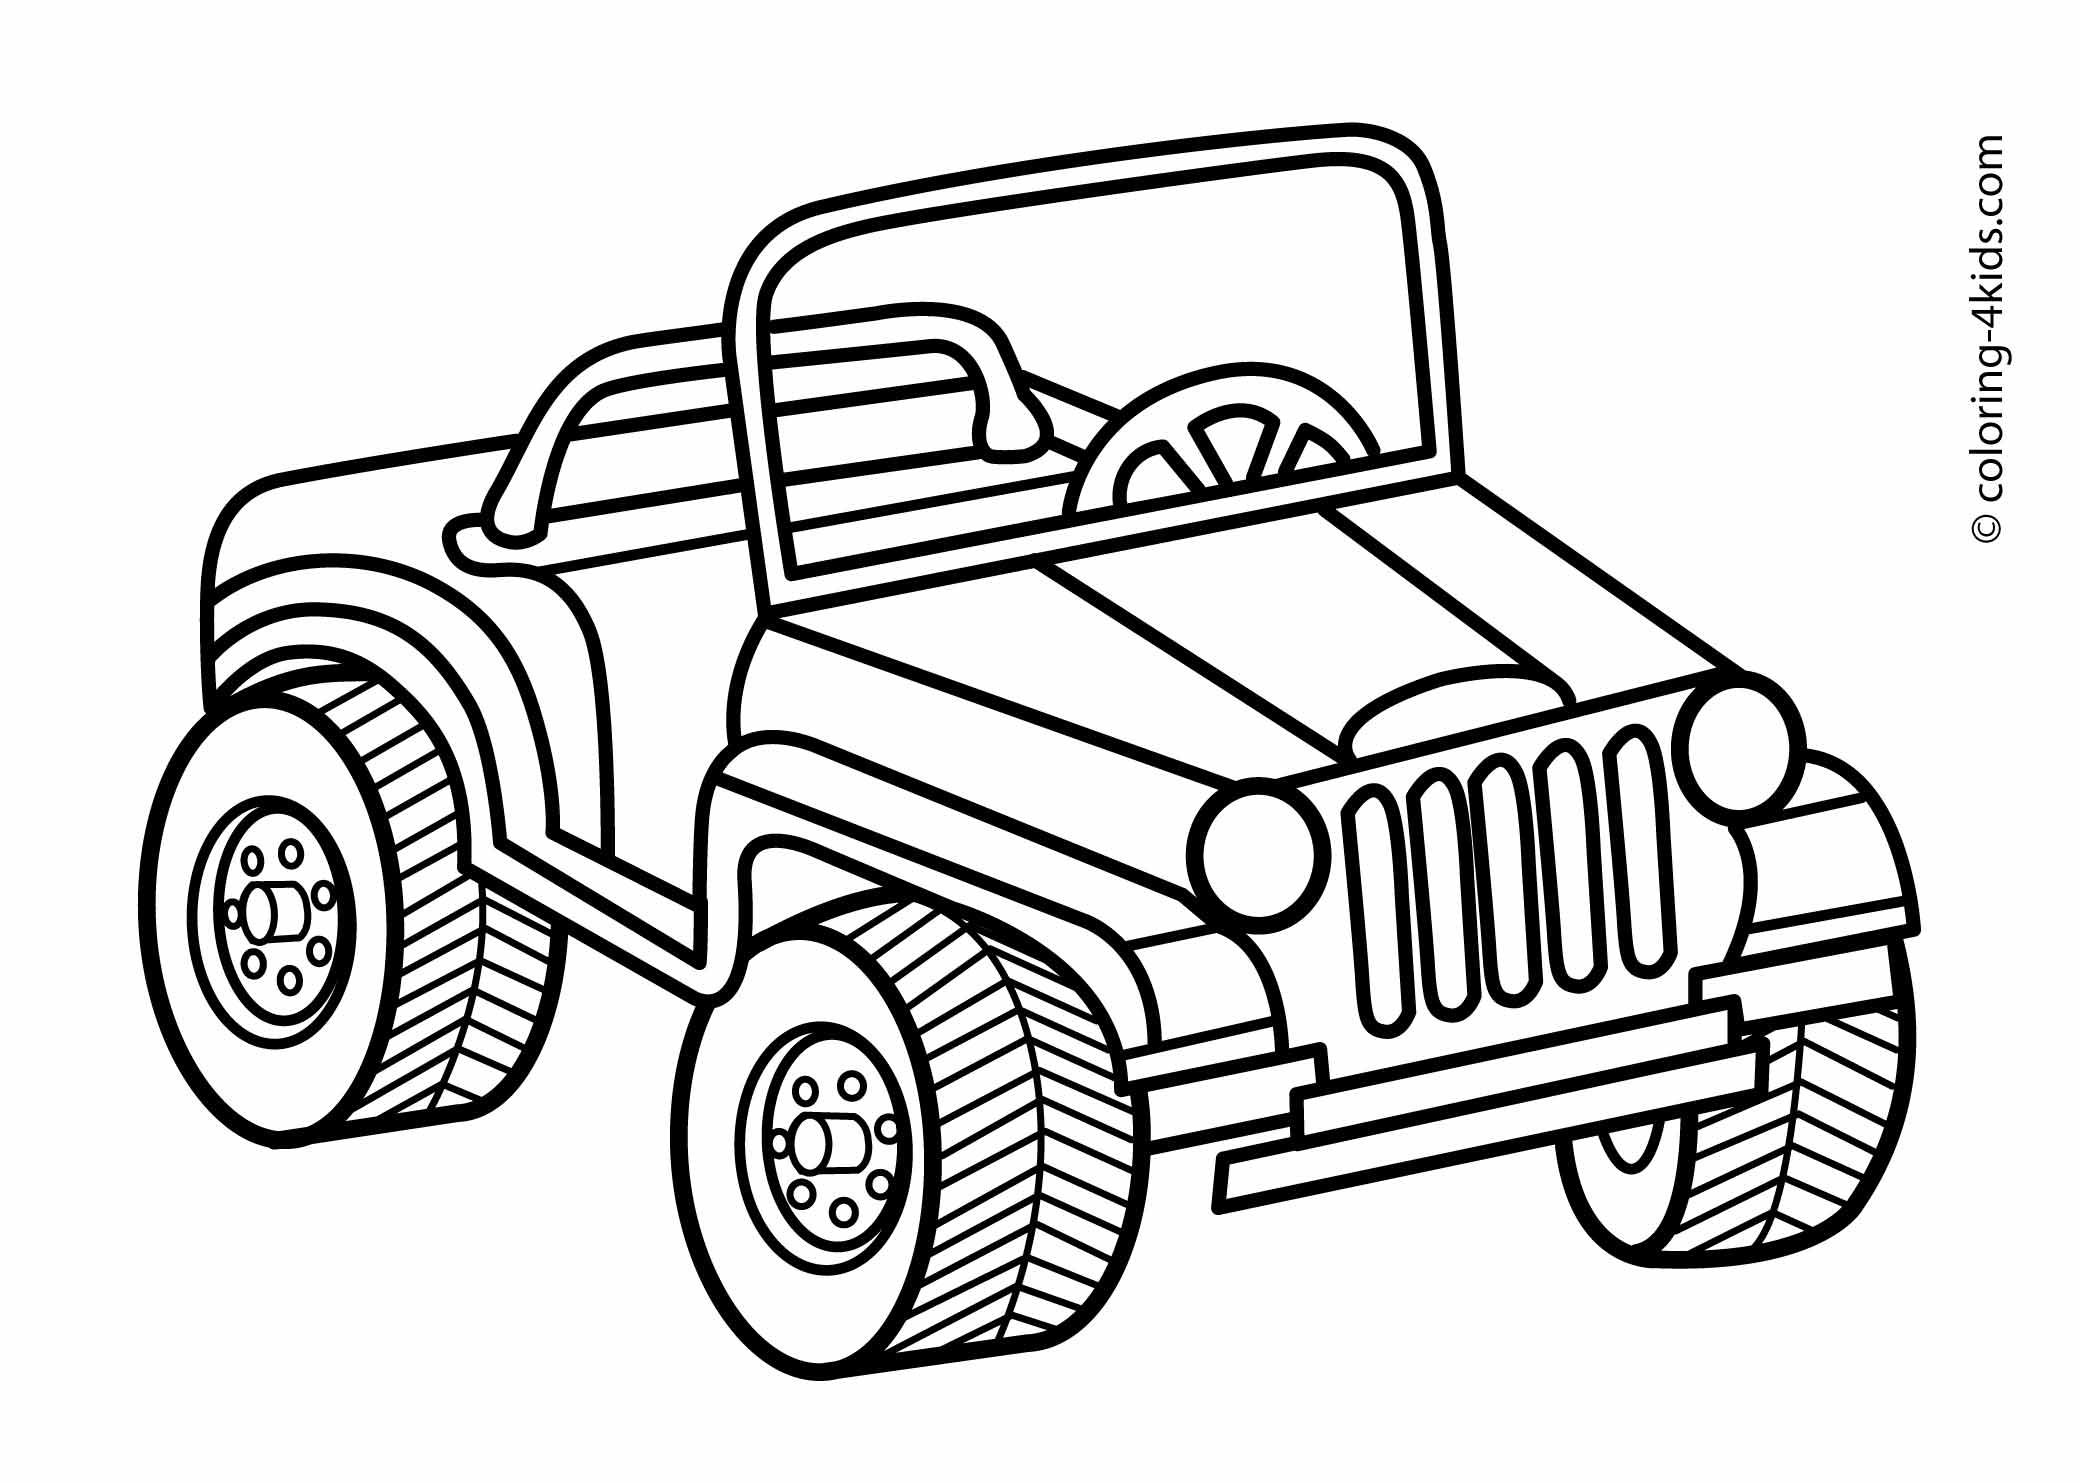 2079x1483 Jeep Transportation Coloring Pages For Kids, Printable Jungle